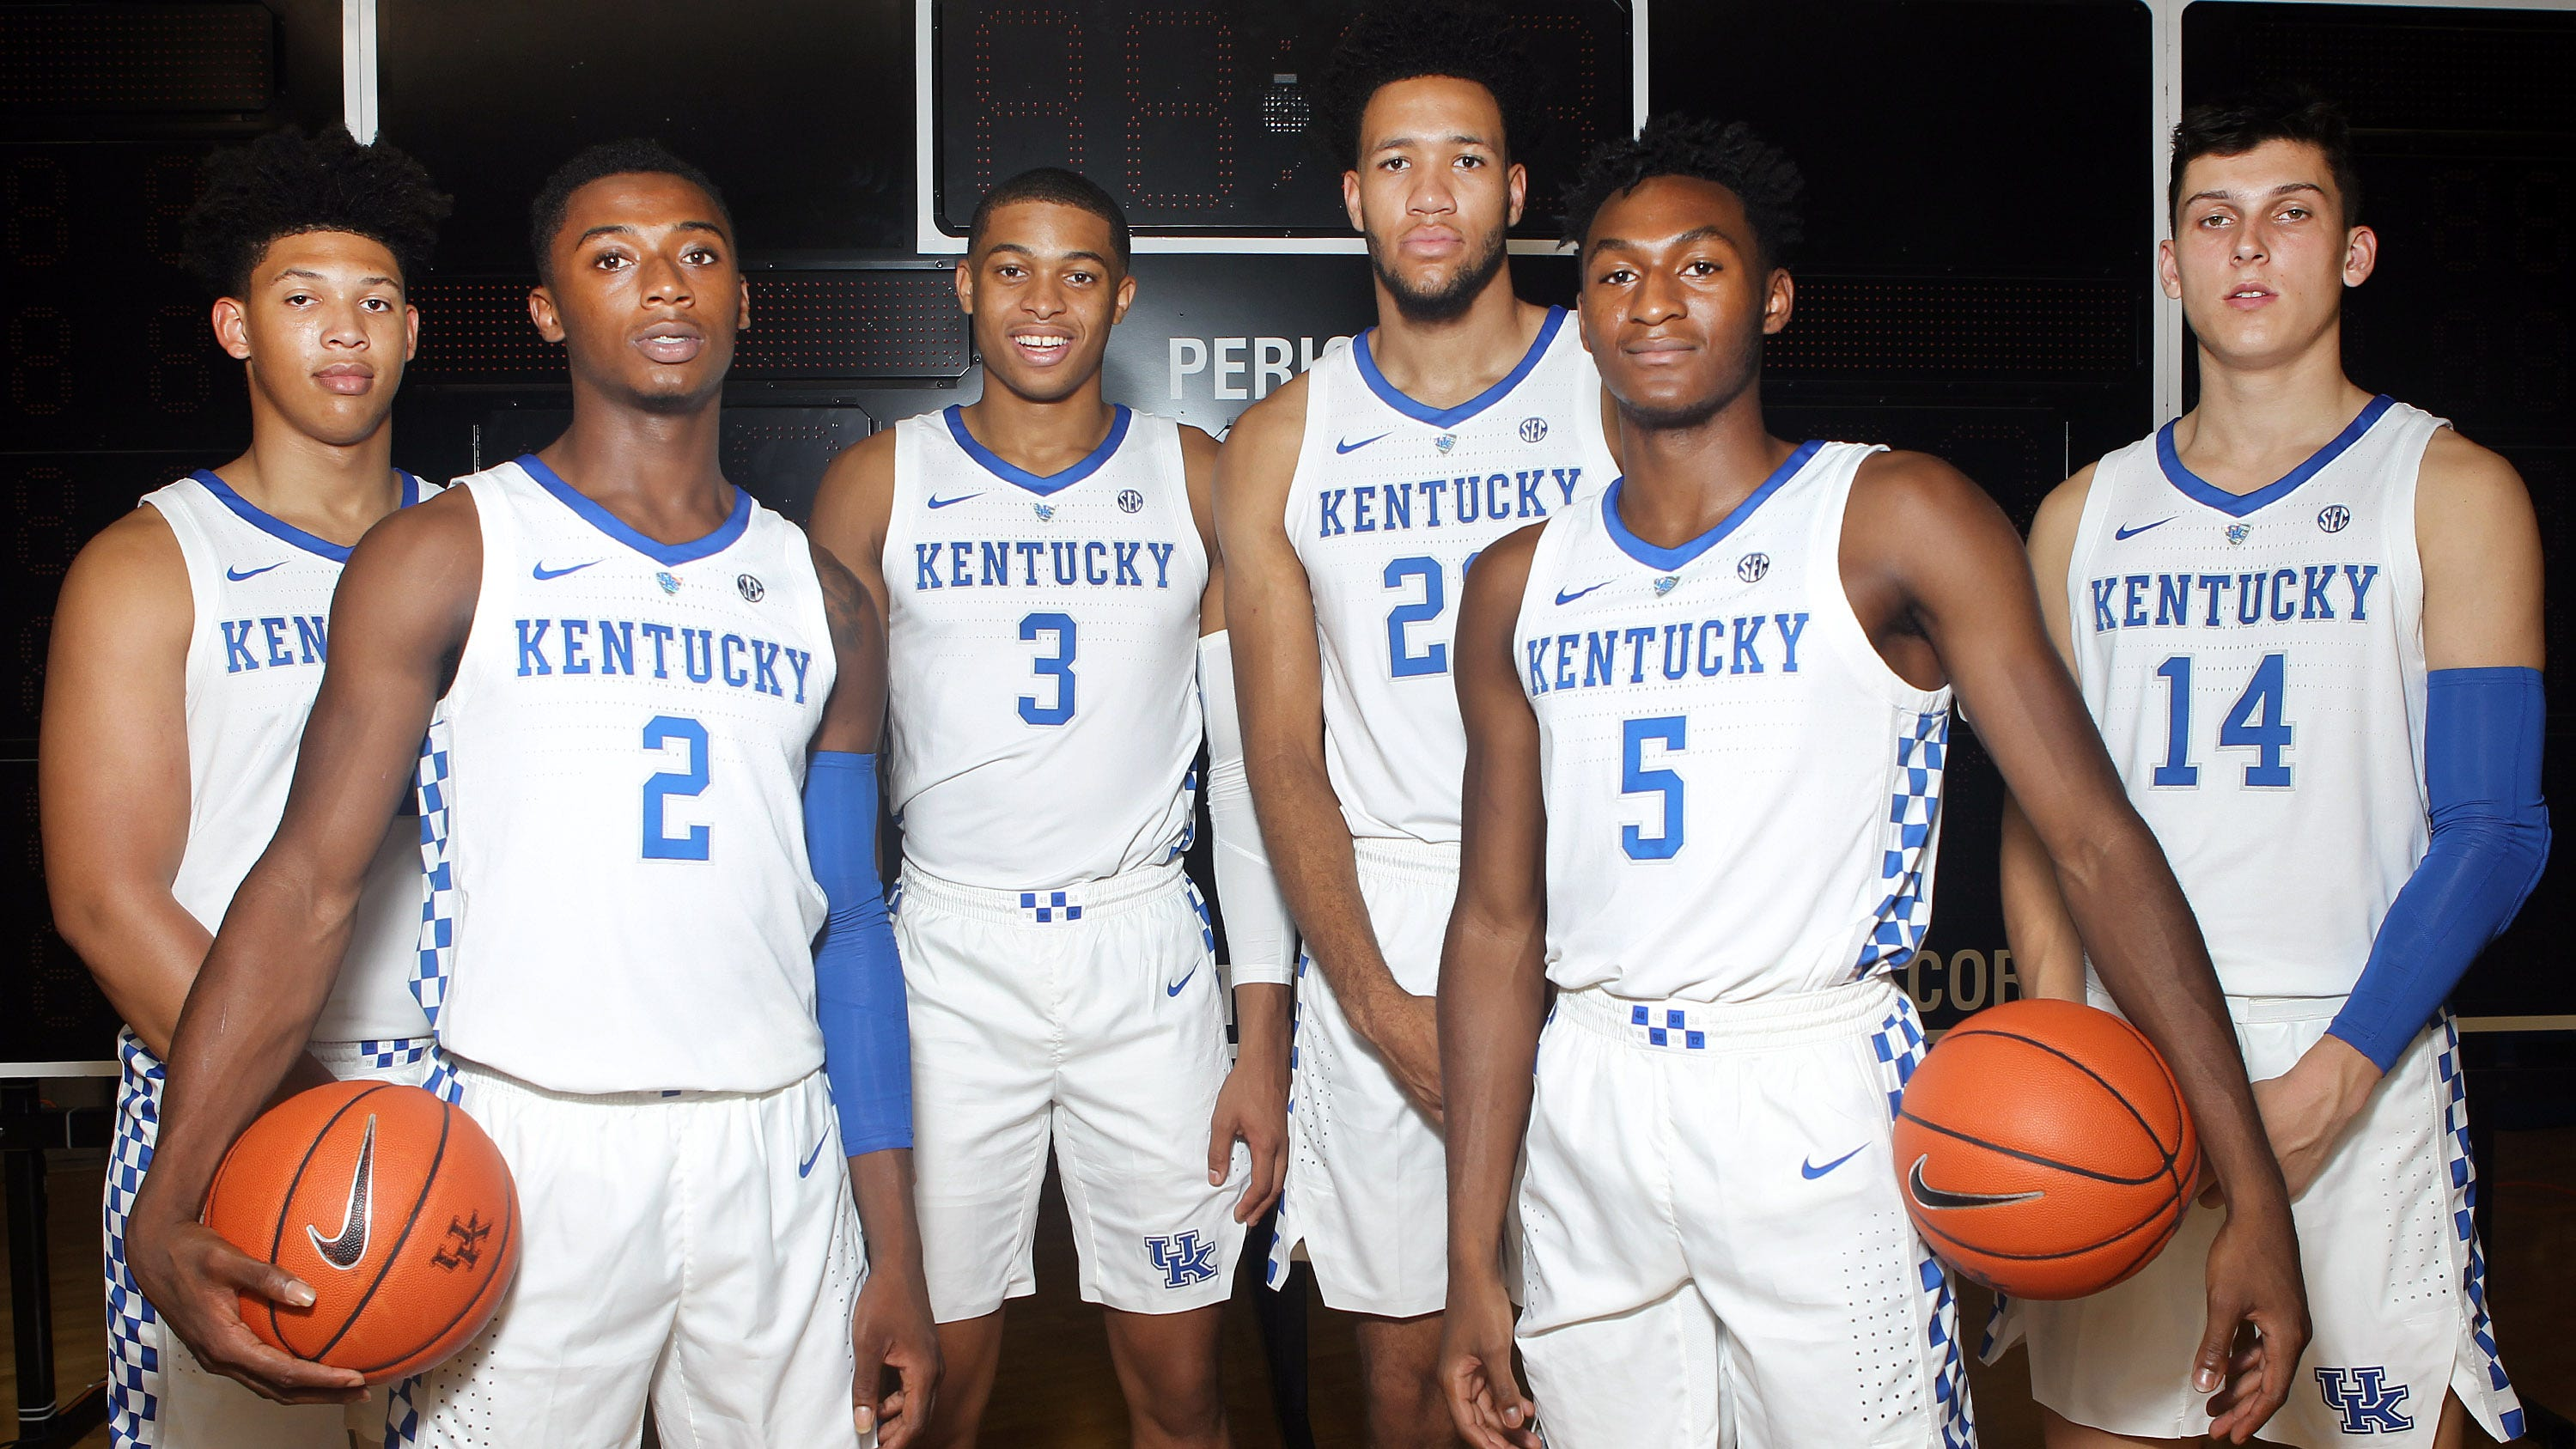 Kentucky Wildcats Basketball 2018 Sec Matchups Revealed: Kentucky Basketball: Freshmen Eager For Matchup With Duke